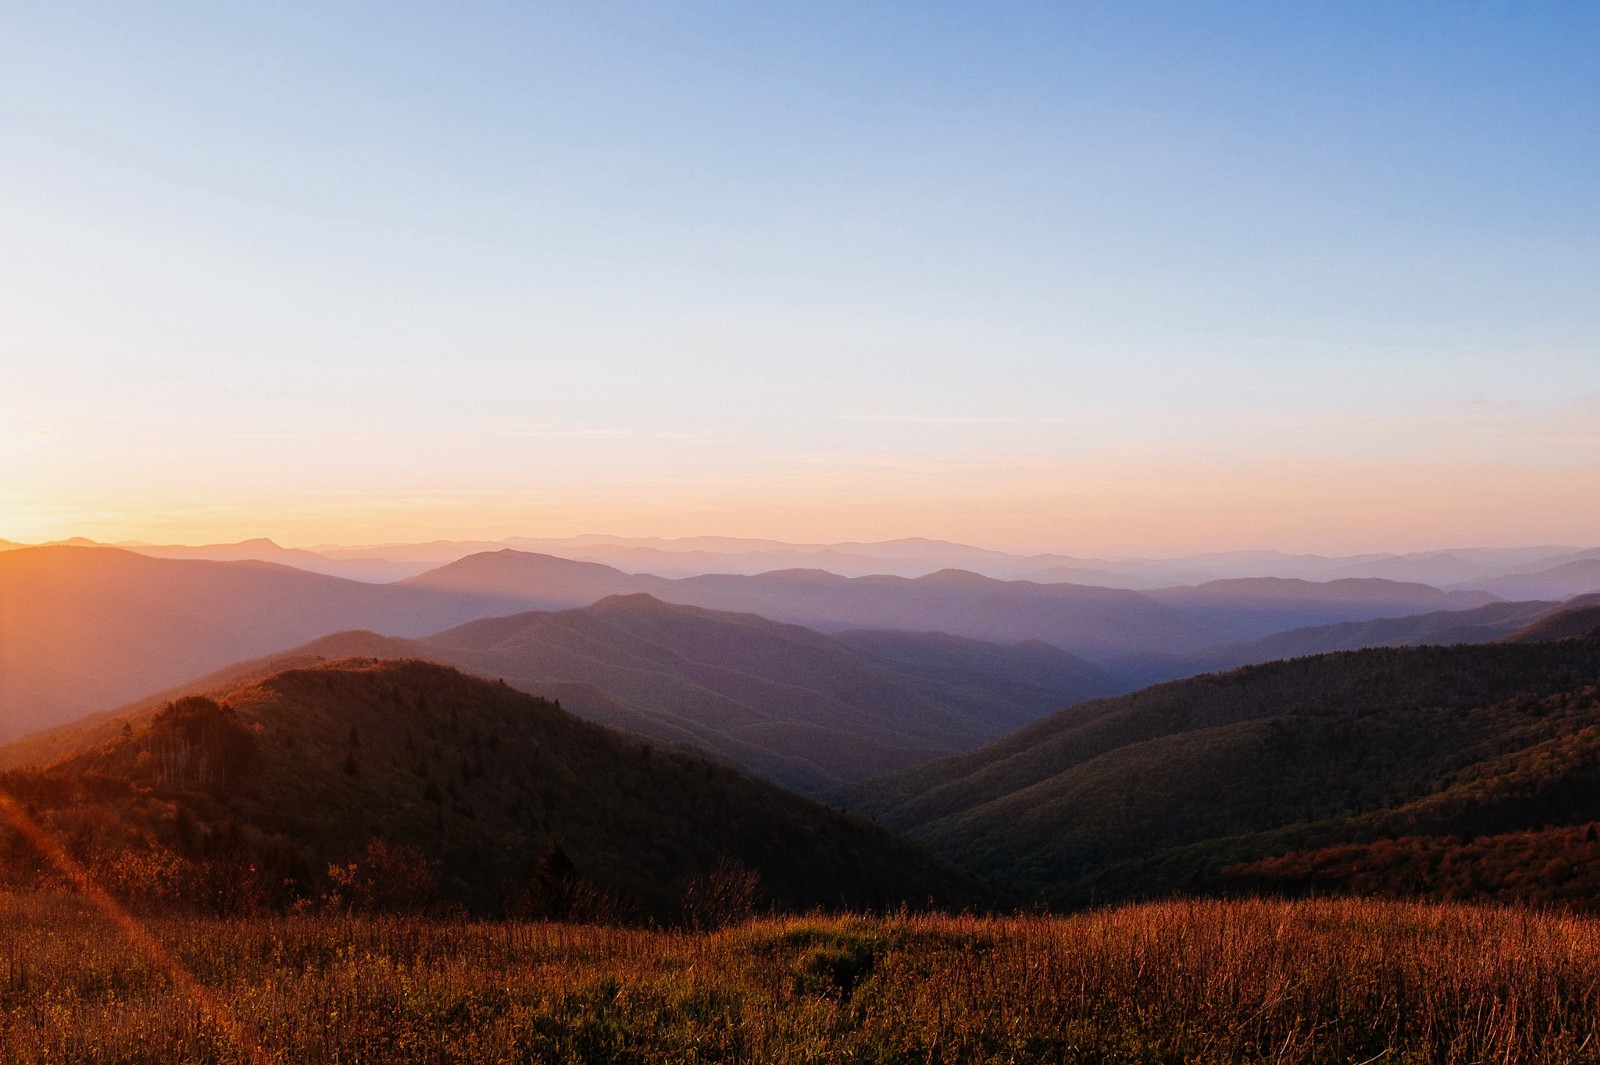 Our memorable sunset hike from our May trip to Asheville